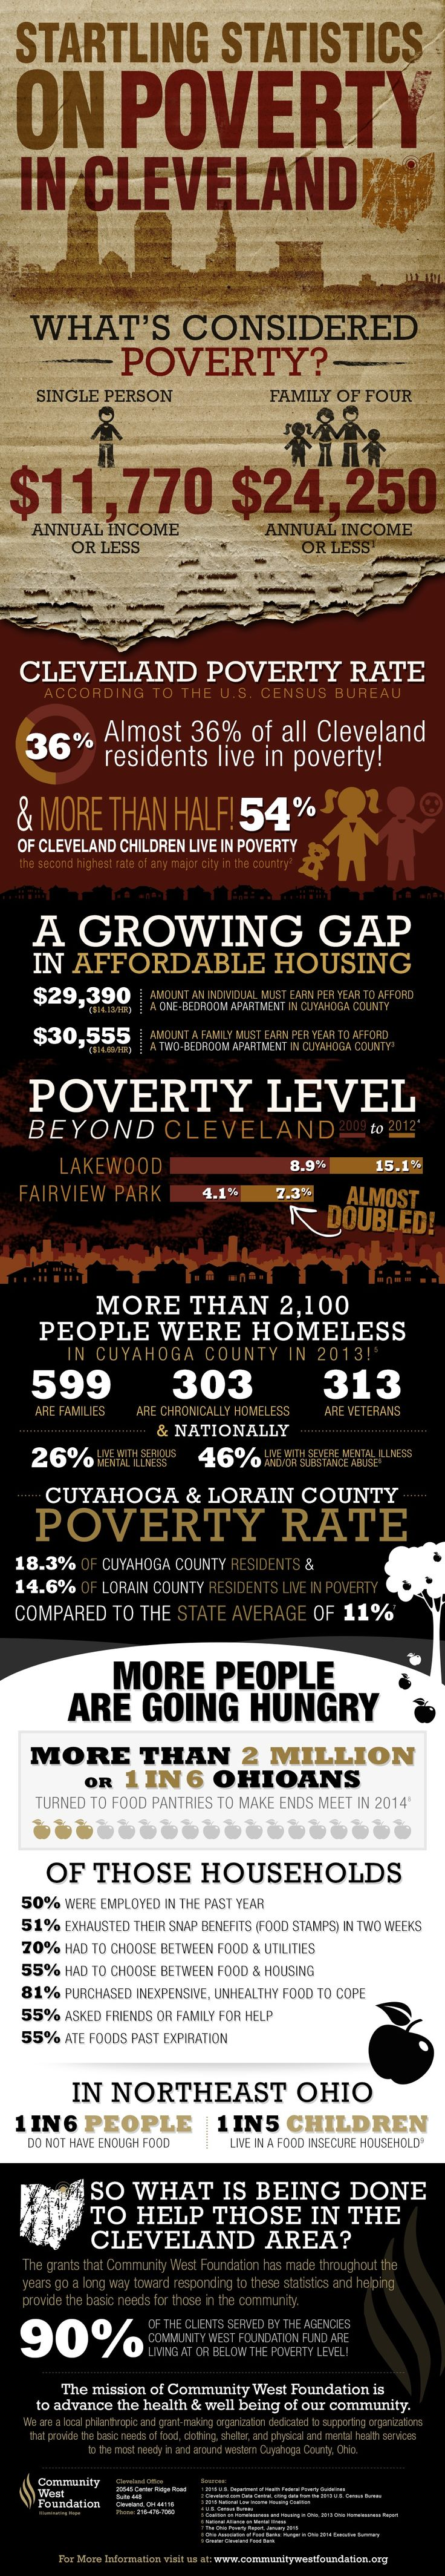 New infographic brings to light some shocking statistics about the prevalence of poverty in the greater Cleveland area.